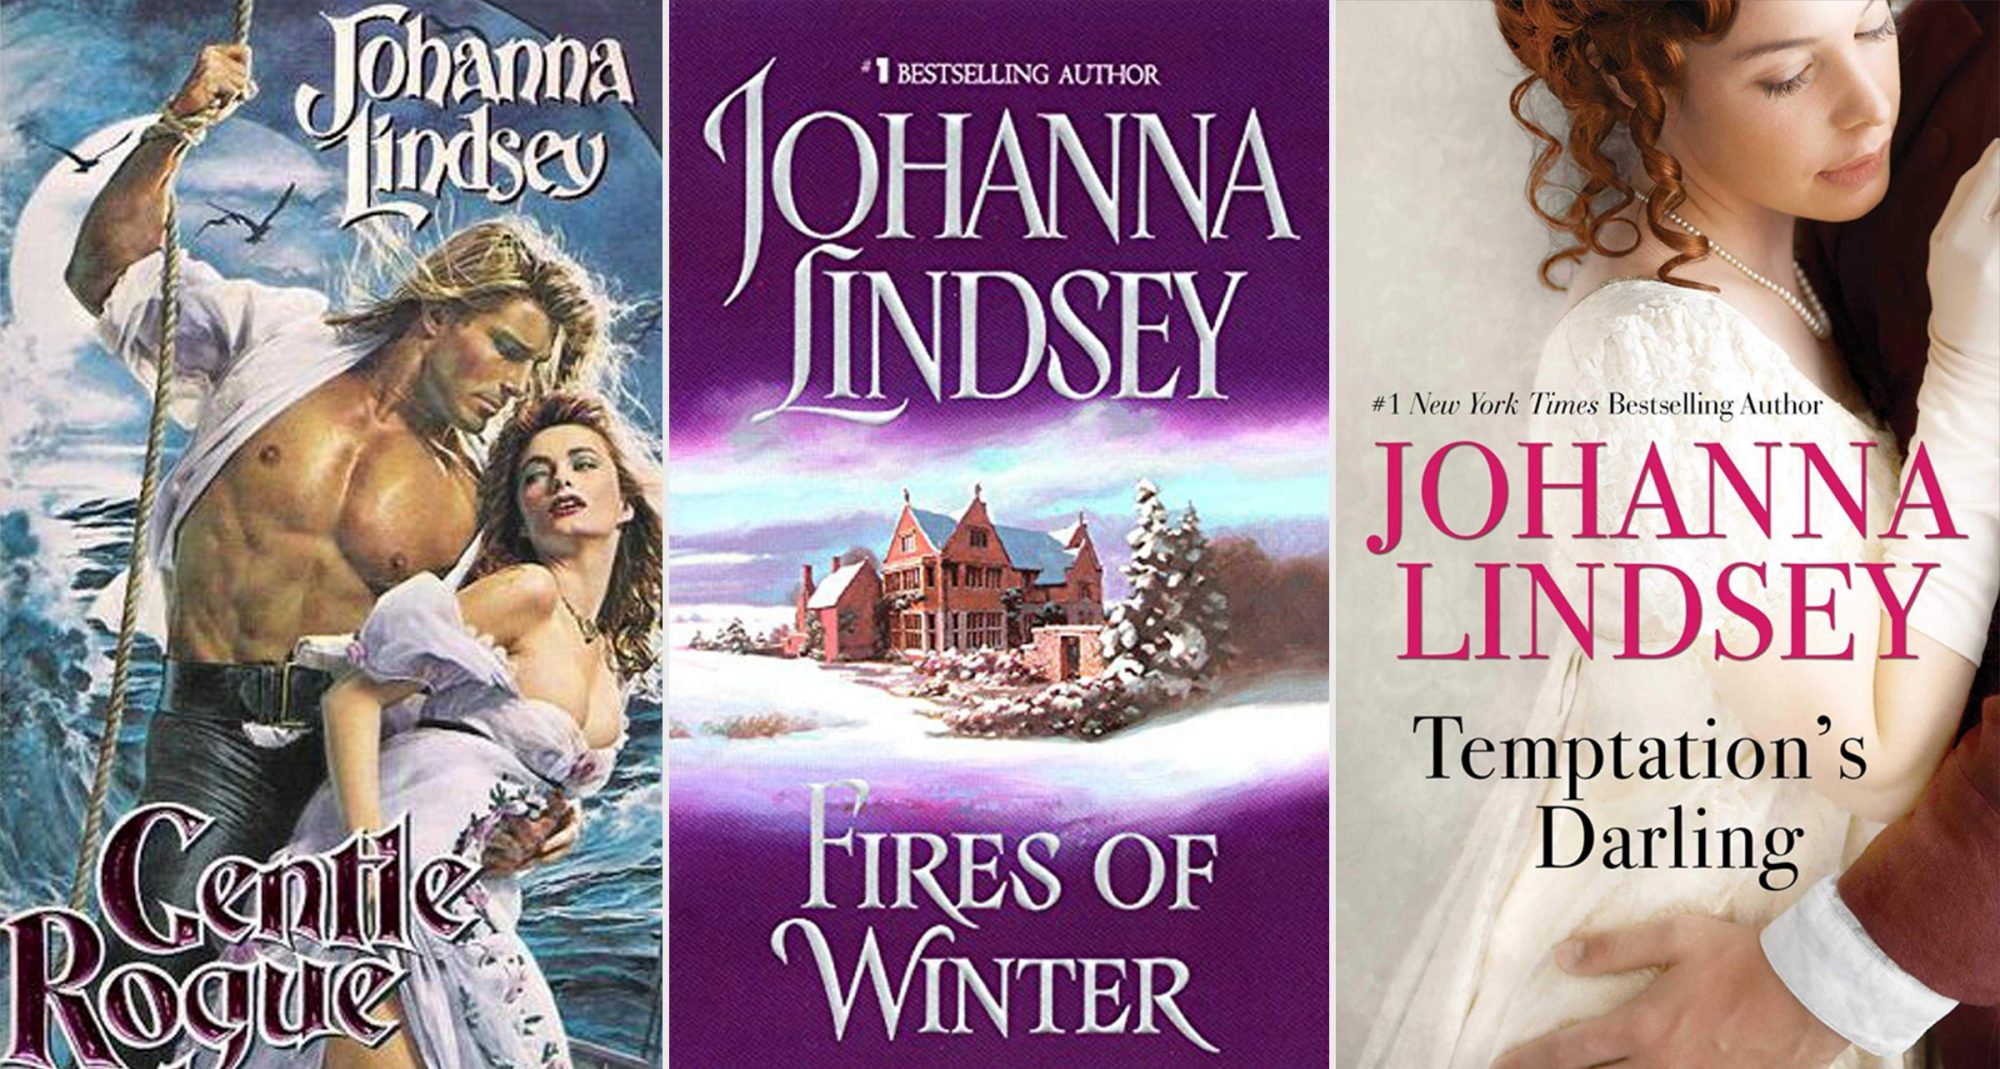 Gentle Rogue, Fires of Winter, and Temptation's Darling